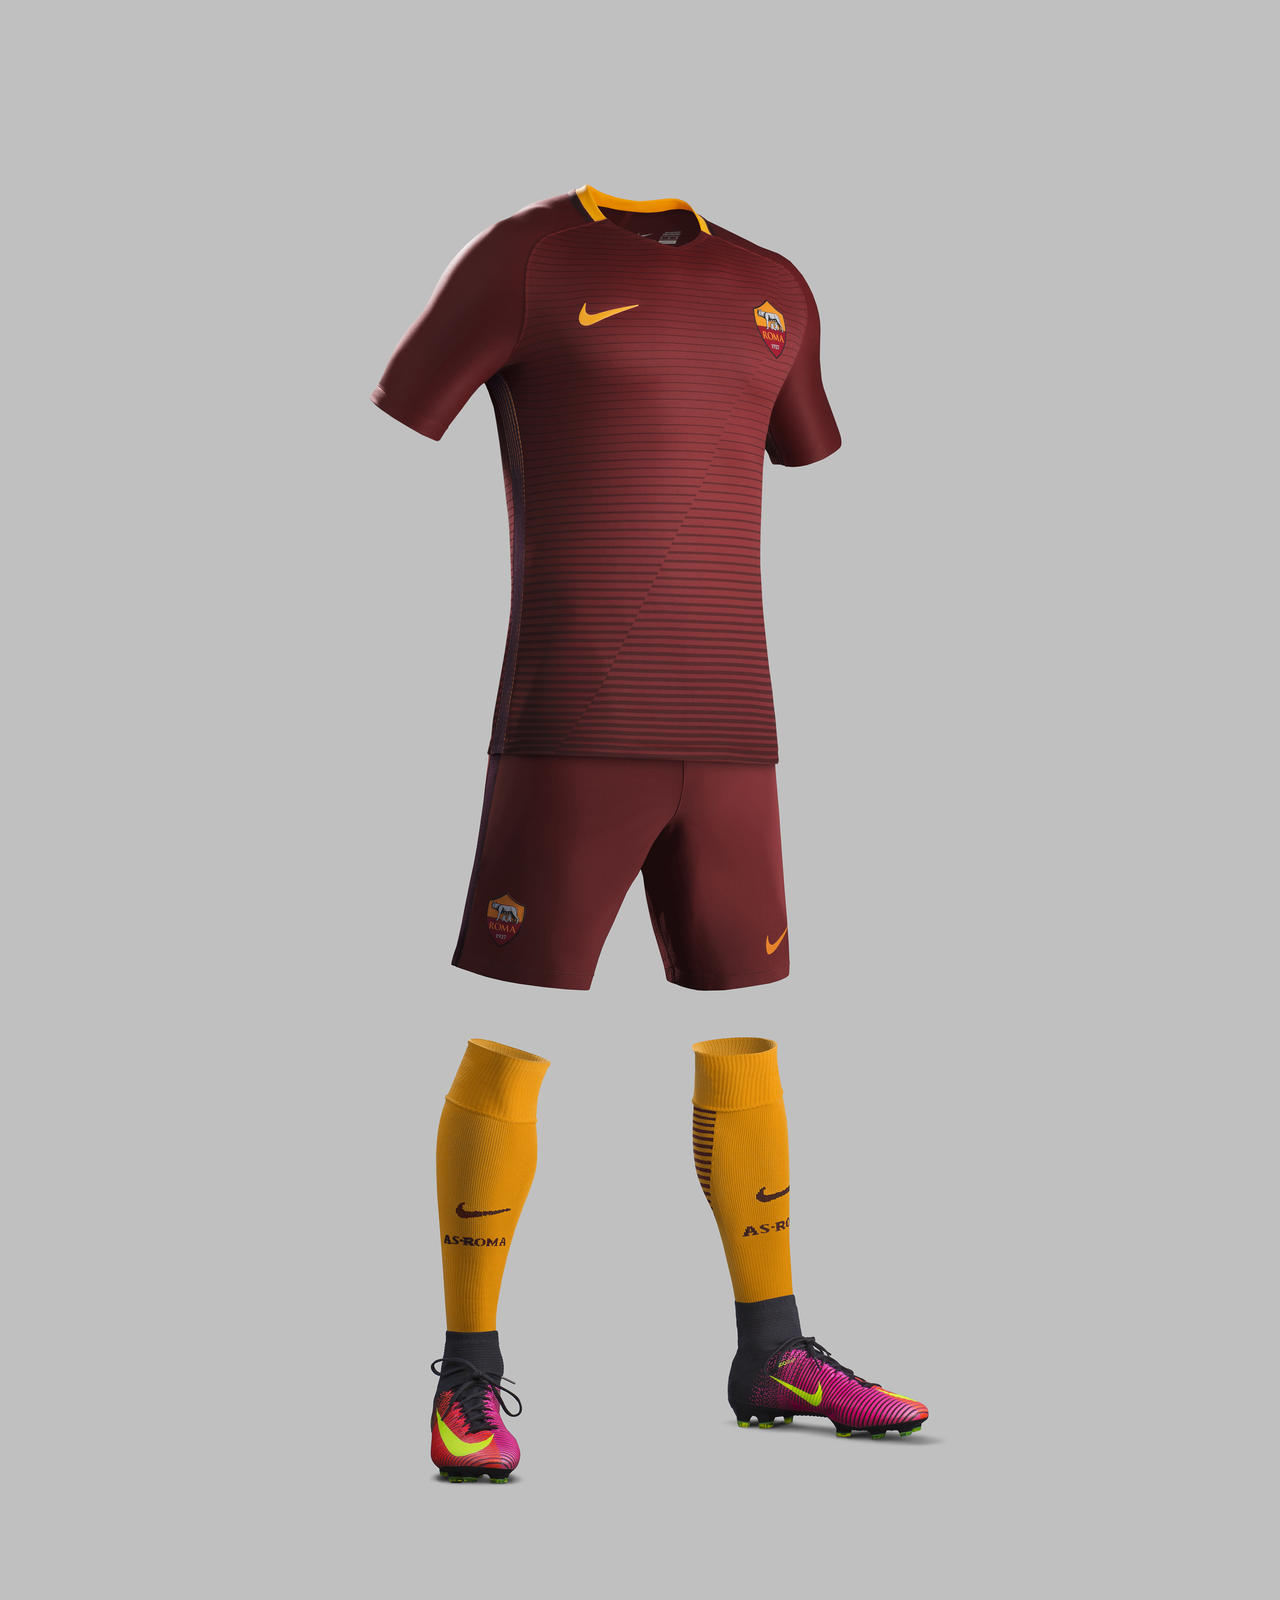 release date 06865 798ec AS Roma Home Kit 2016-17 - Nike News